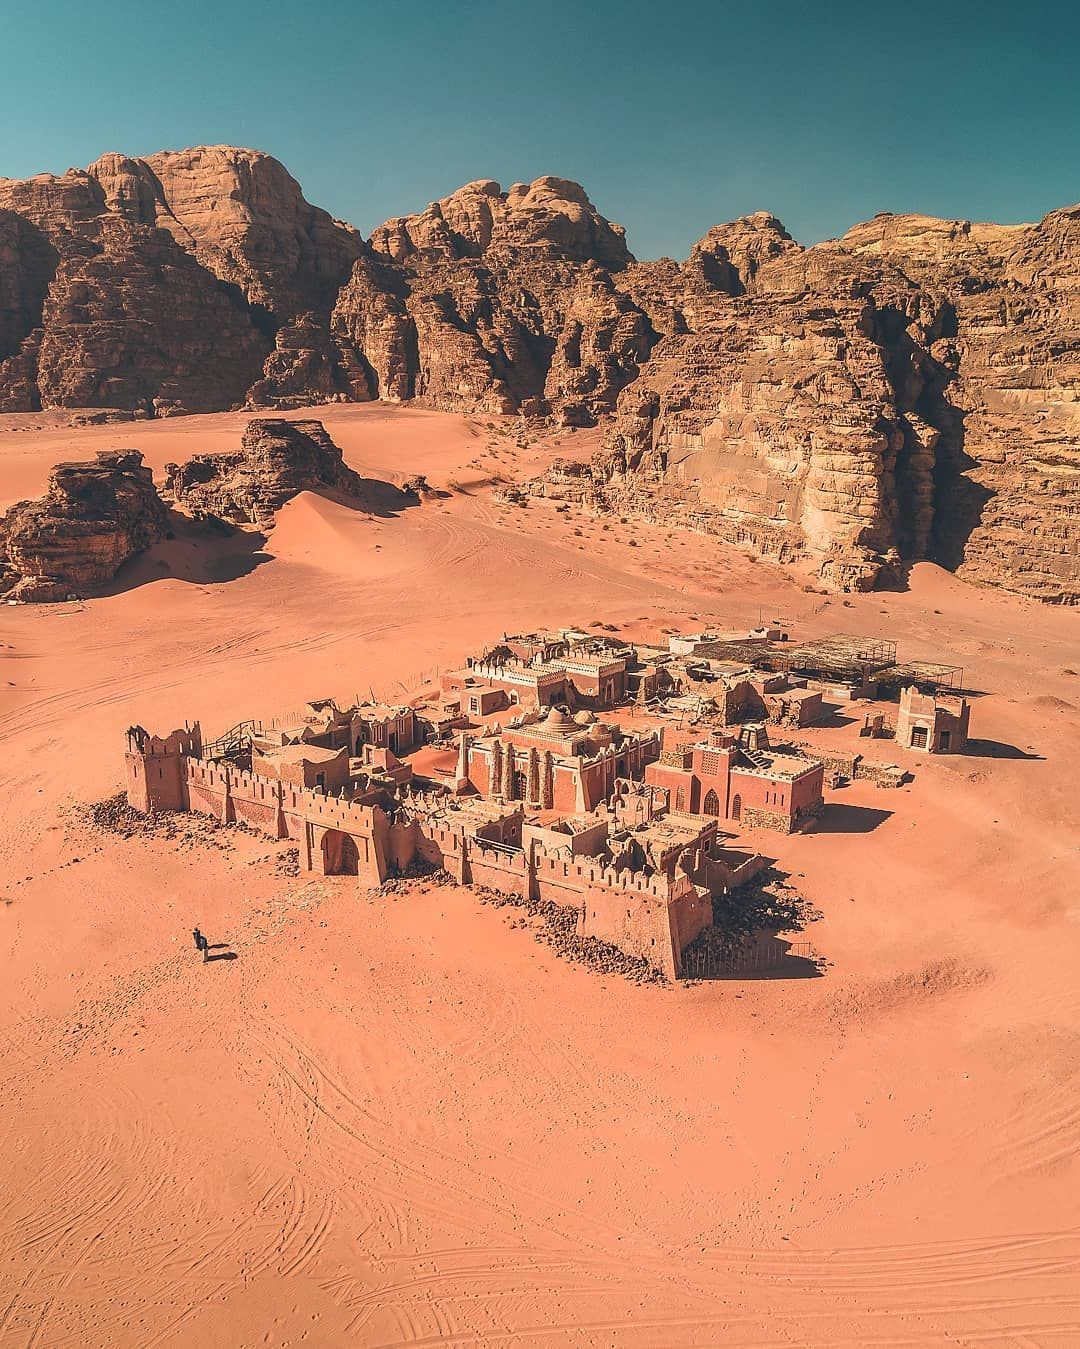 . Instead of Petra, there are many places to visit in Jordan. Wadi Rum is a desert with spectacular and scenic sandstone mountains in… #wadirum